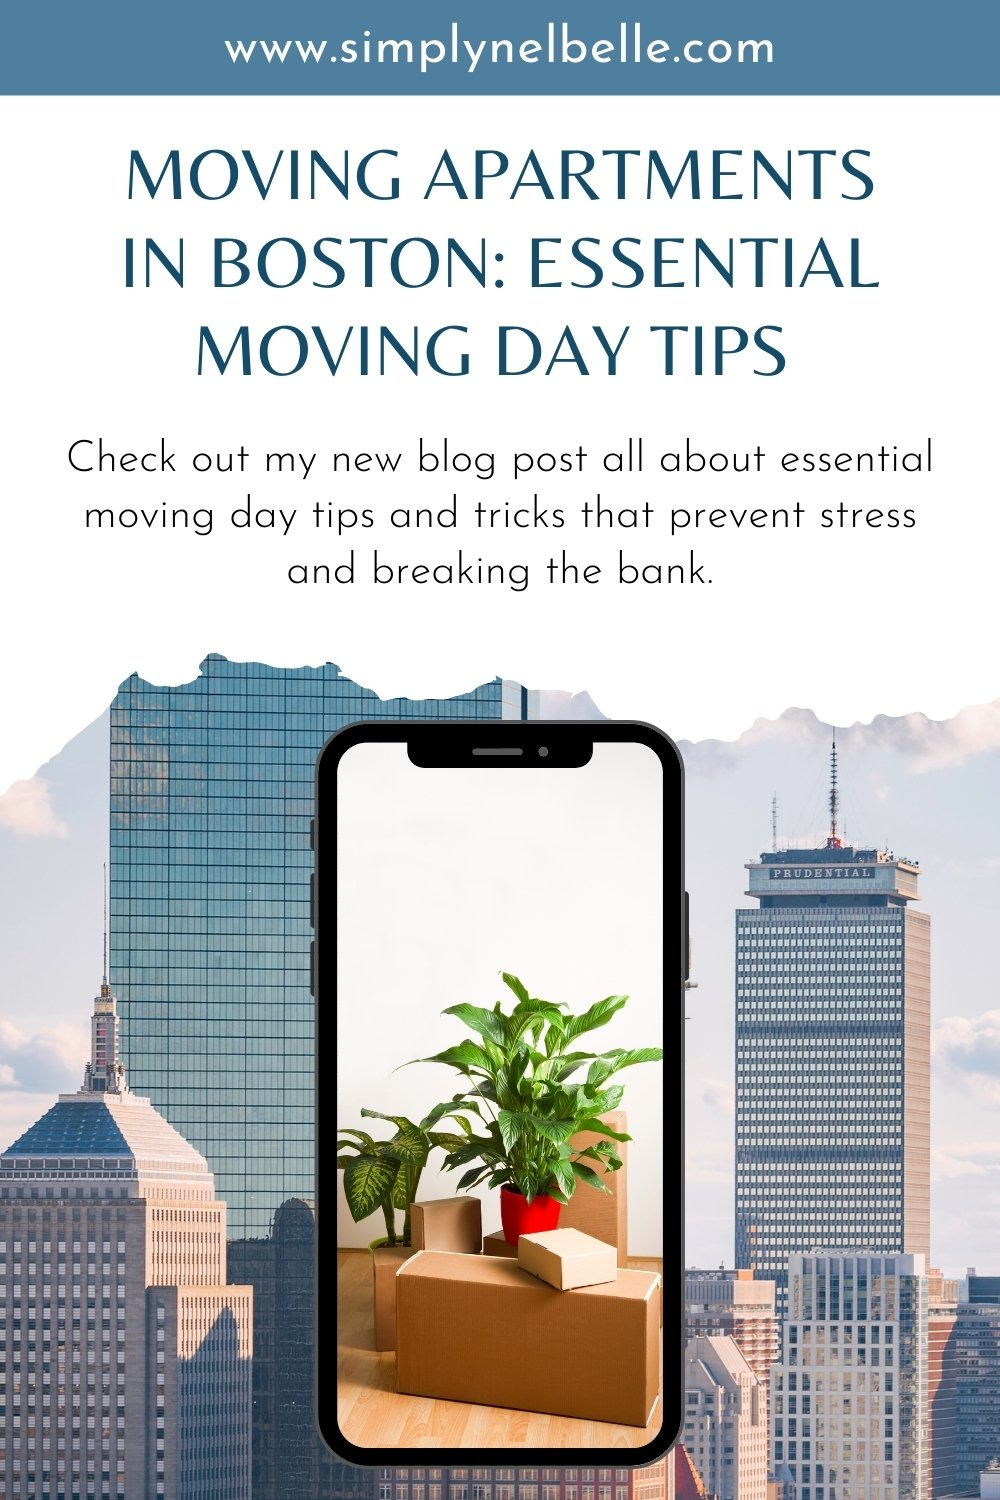 Guide to Moving Apartments in Boston: Essential Moving Day Tips to Prevent Stress and Breaking the Bank, Pinterest Image, Simply Nel Belle, Moving Tips